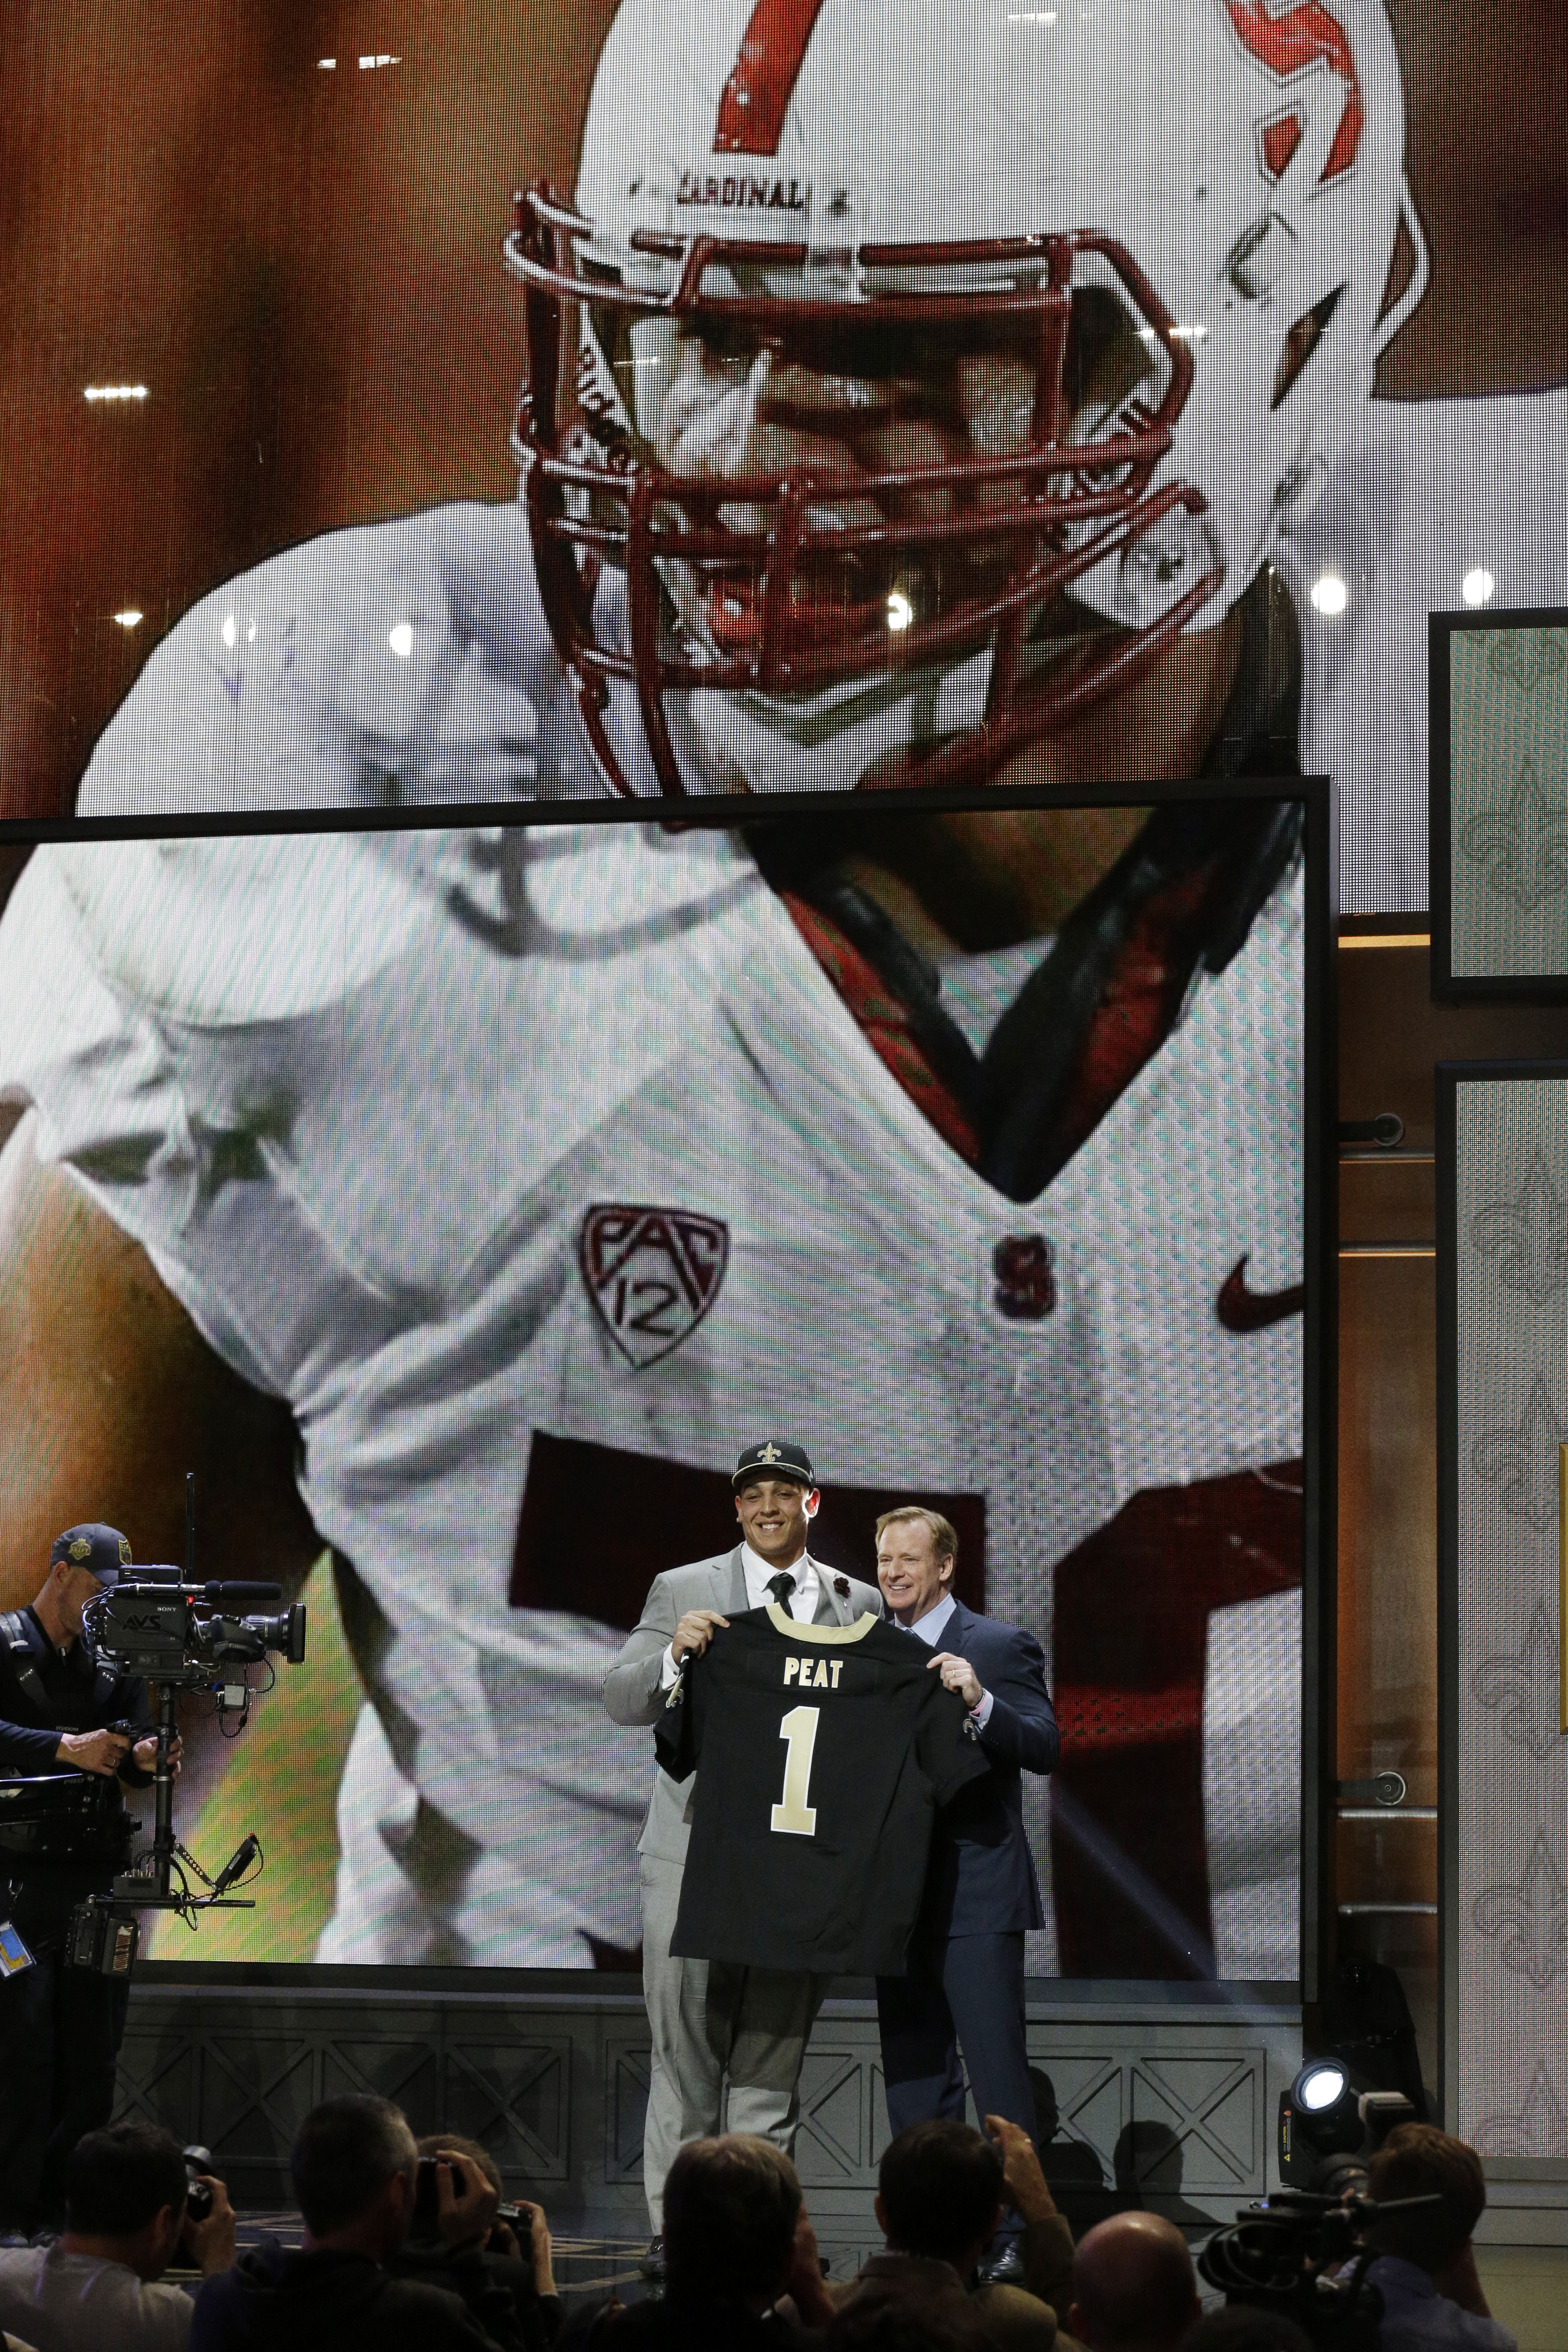 Stanford offensive lineman Andrus Peat poses for photos with NFL commissioner Roger Goodell after being selected by the New Orleans Saints as the 13th pick in the first round of the 2015 NFL Draft,  Thursday, April 30, 2015, in Chicago. (AP Photo/Nam Y. H